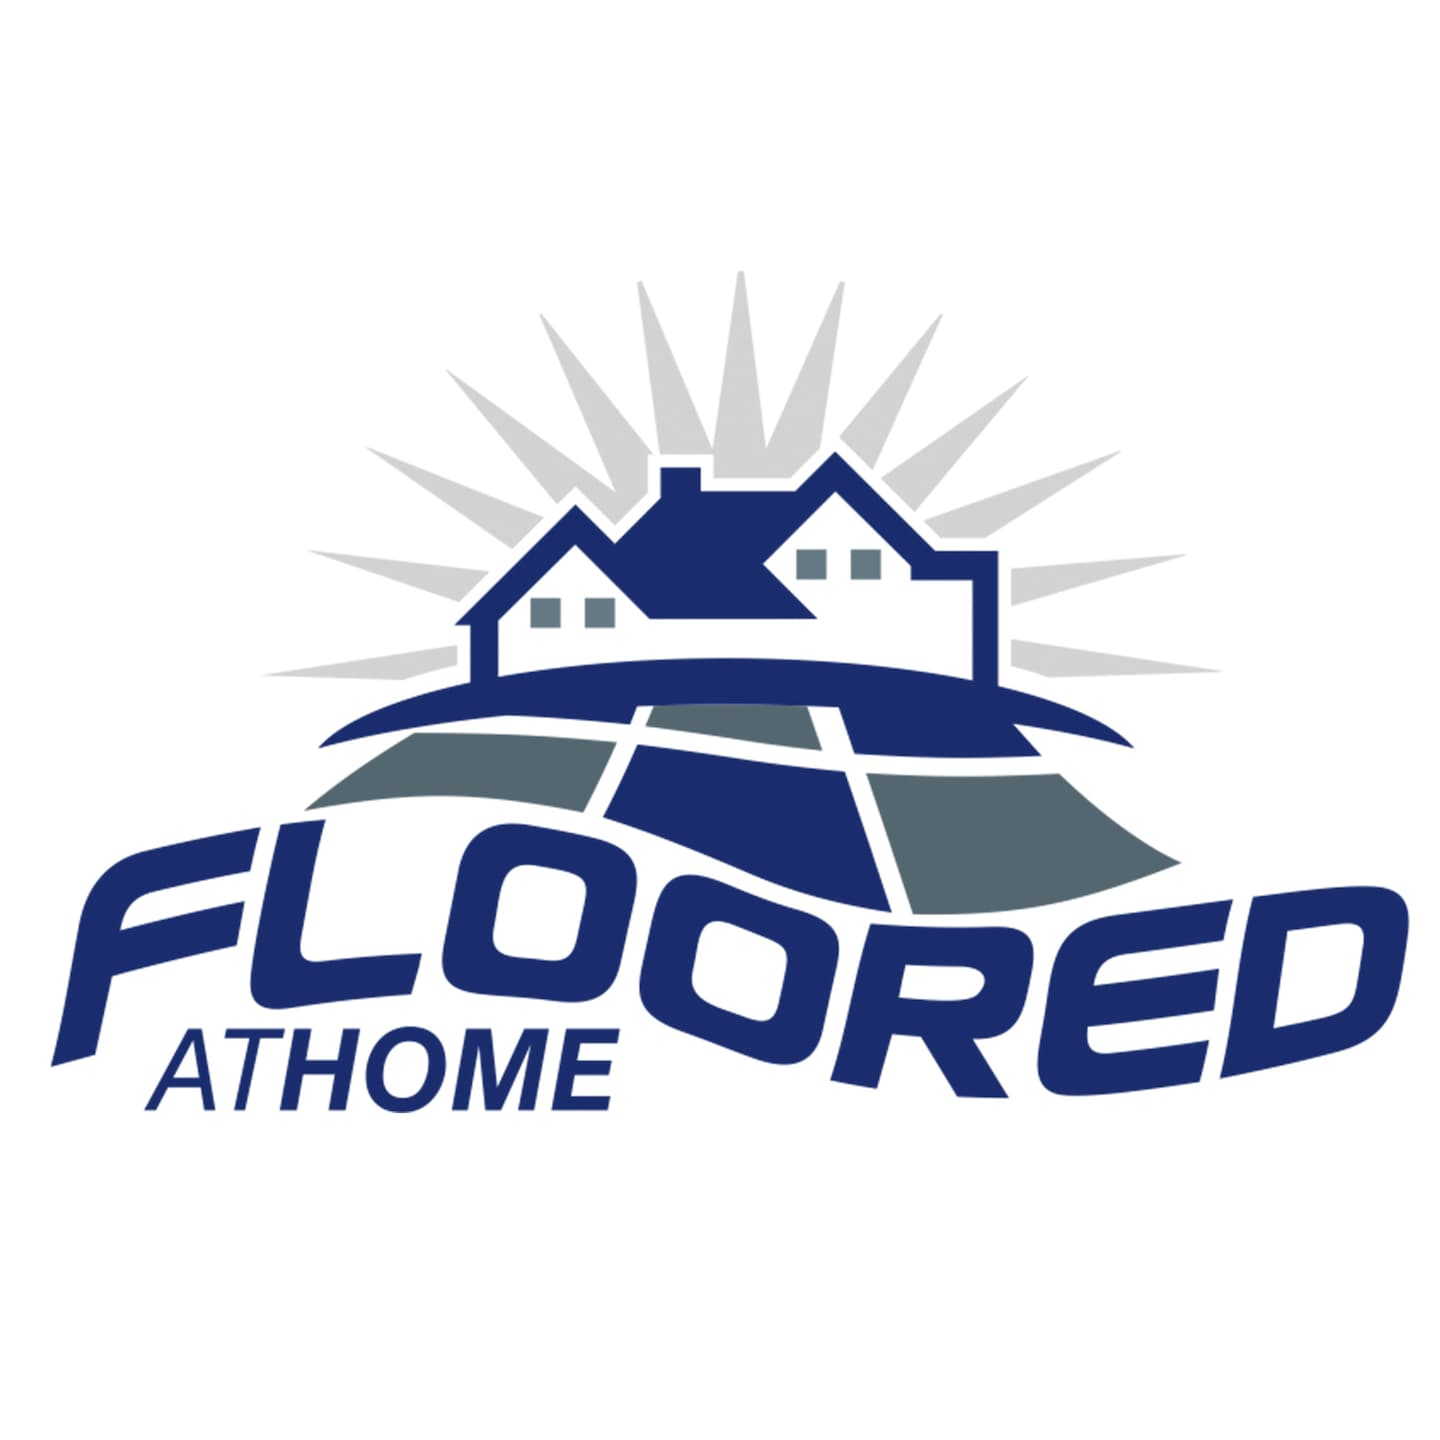 Floored At Home